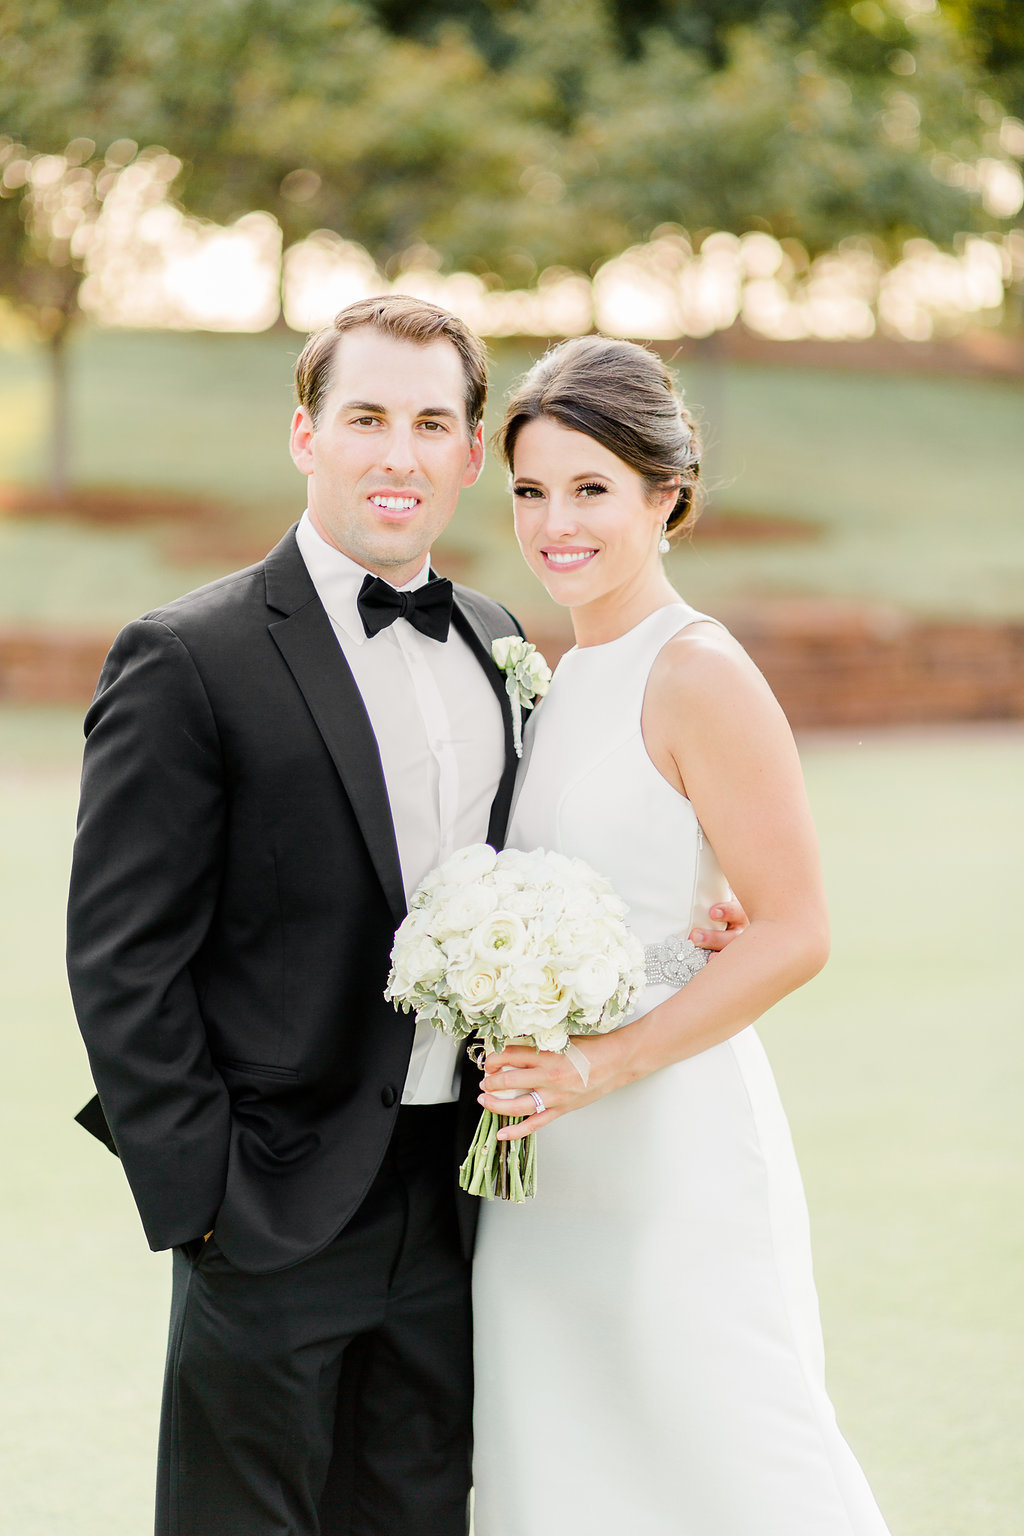 Gallardia-Oklahoma-City-Oklahoma-Wedding-Photographer-Holly-Felts-Photography-Photos-335